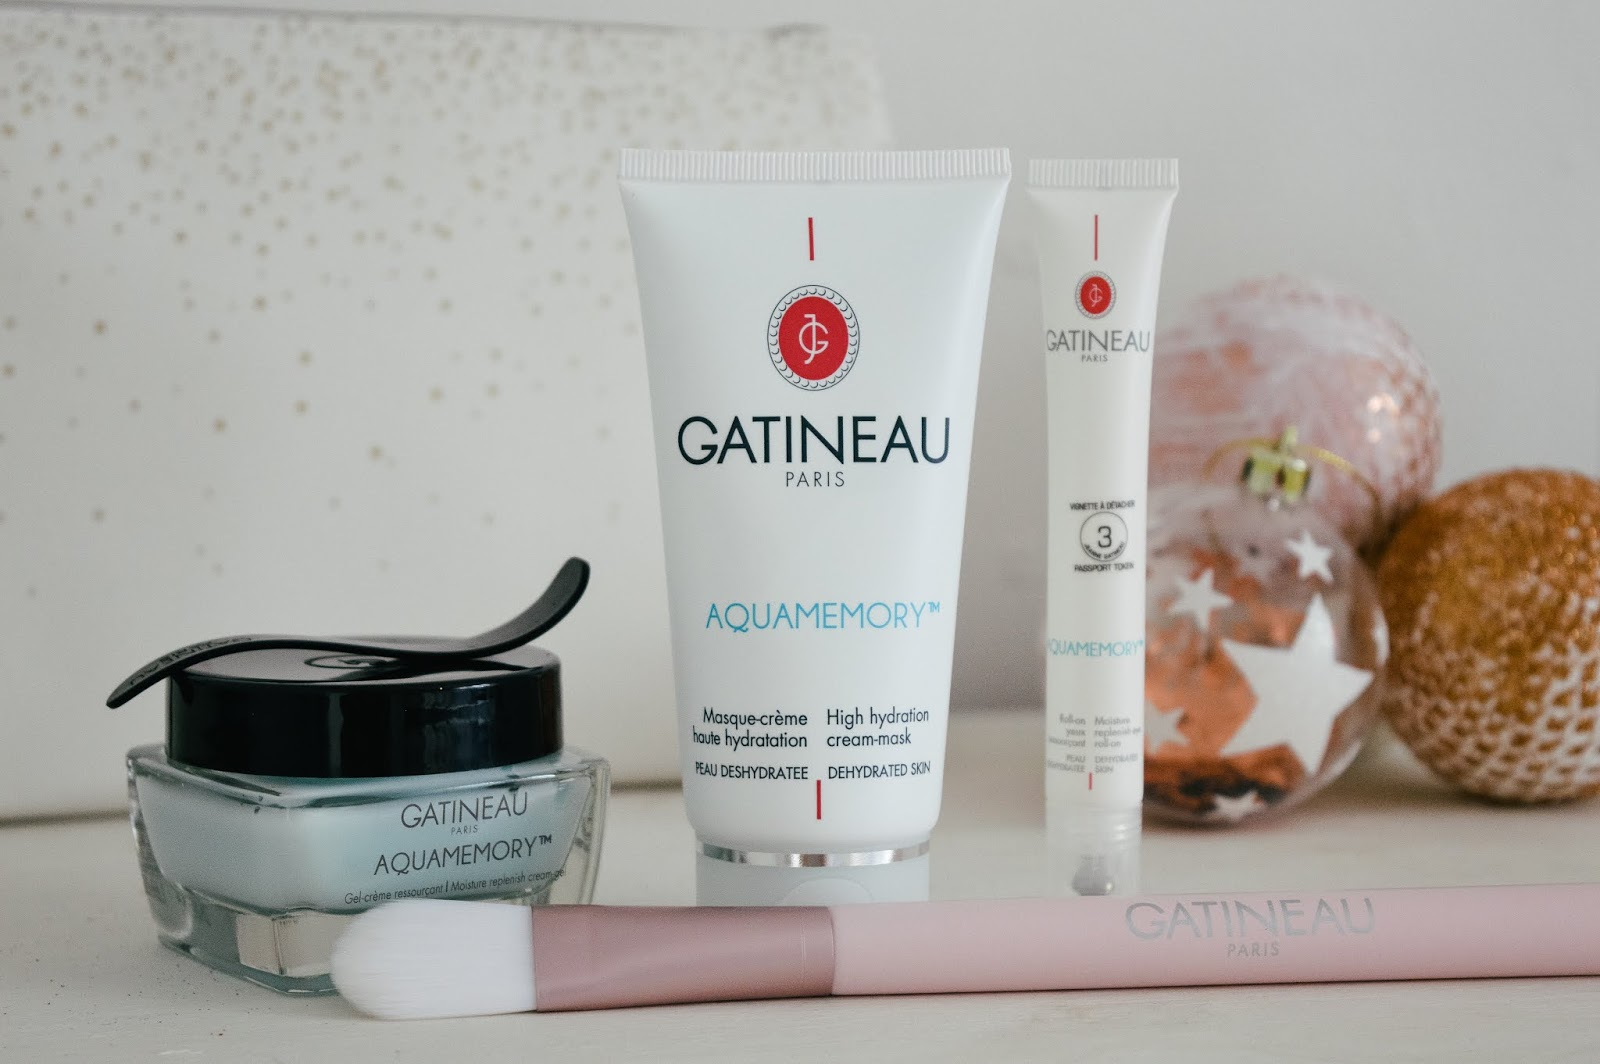 Gatineau Christmas Gift Sets, Gatineau Review, UK beauty bloggers, Hampshire bloggers, Dalry Rose blog